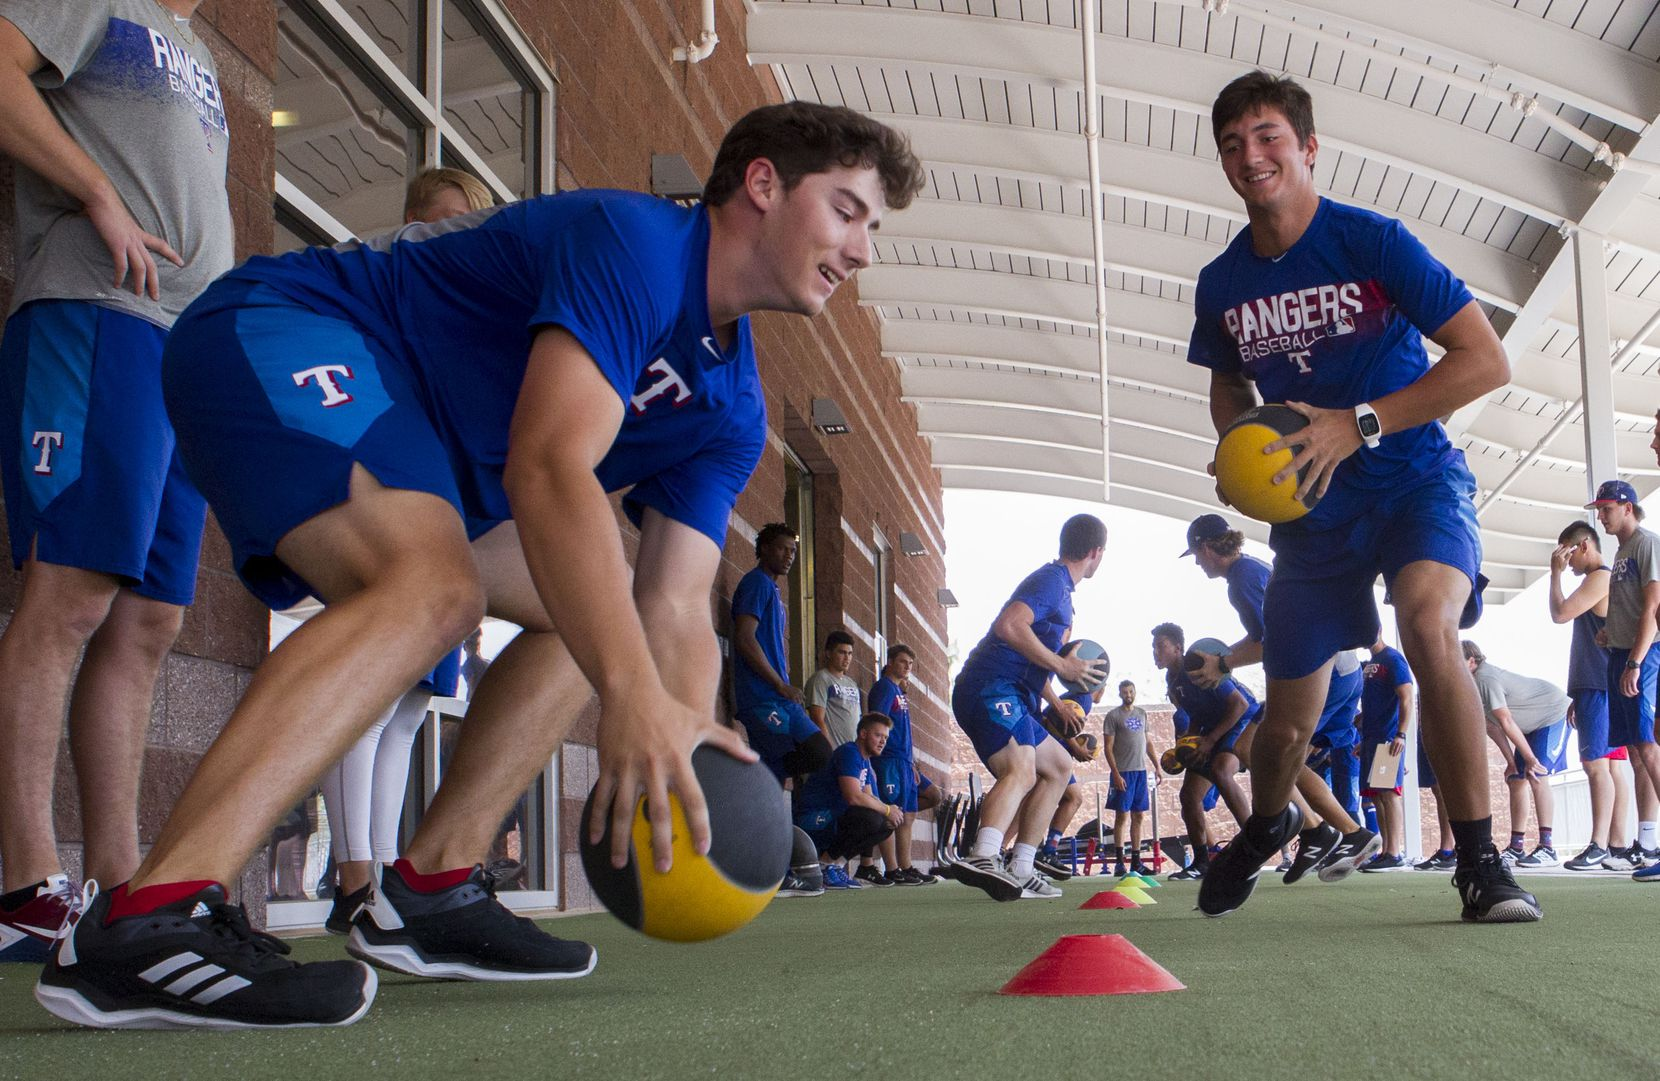 Texas Rangers' pitcher Cole Winn (left) gets the upper hand on Owen White(right) while working on drills that improves strength, agility and quickness at the Rangers' training facility Friday, Aug. 10, 2018 in Surprise, Arizona.